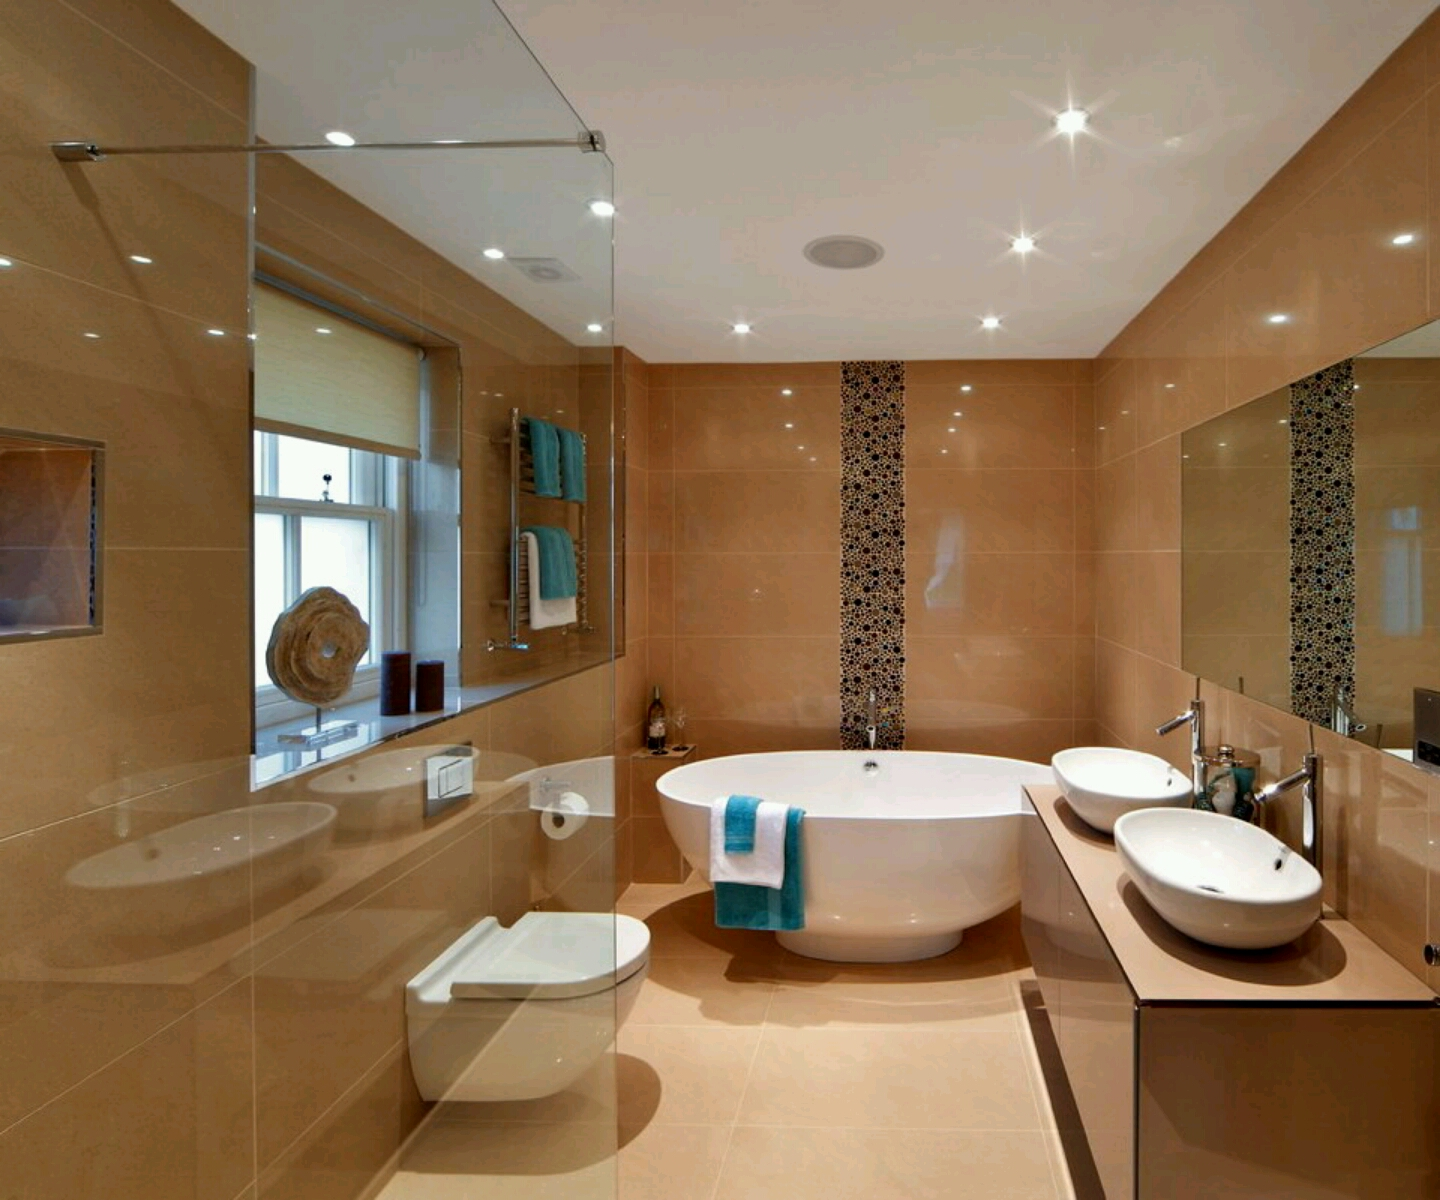 New home designs latest luxury modern bathrooms designs for New model bathroom design